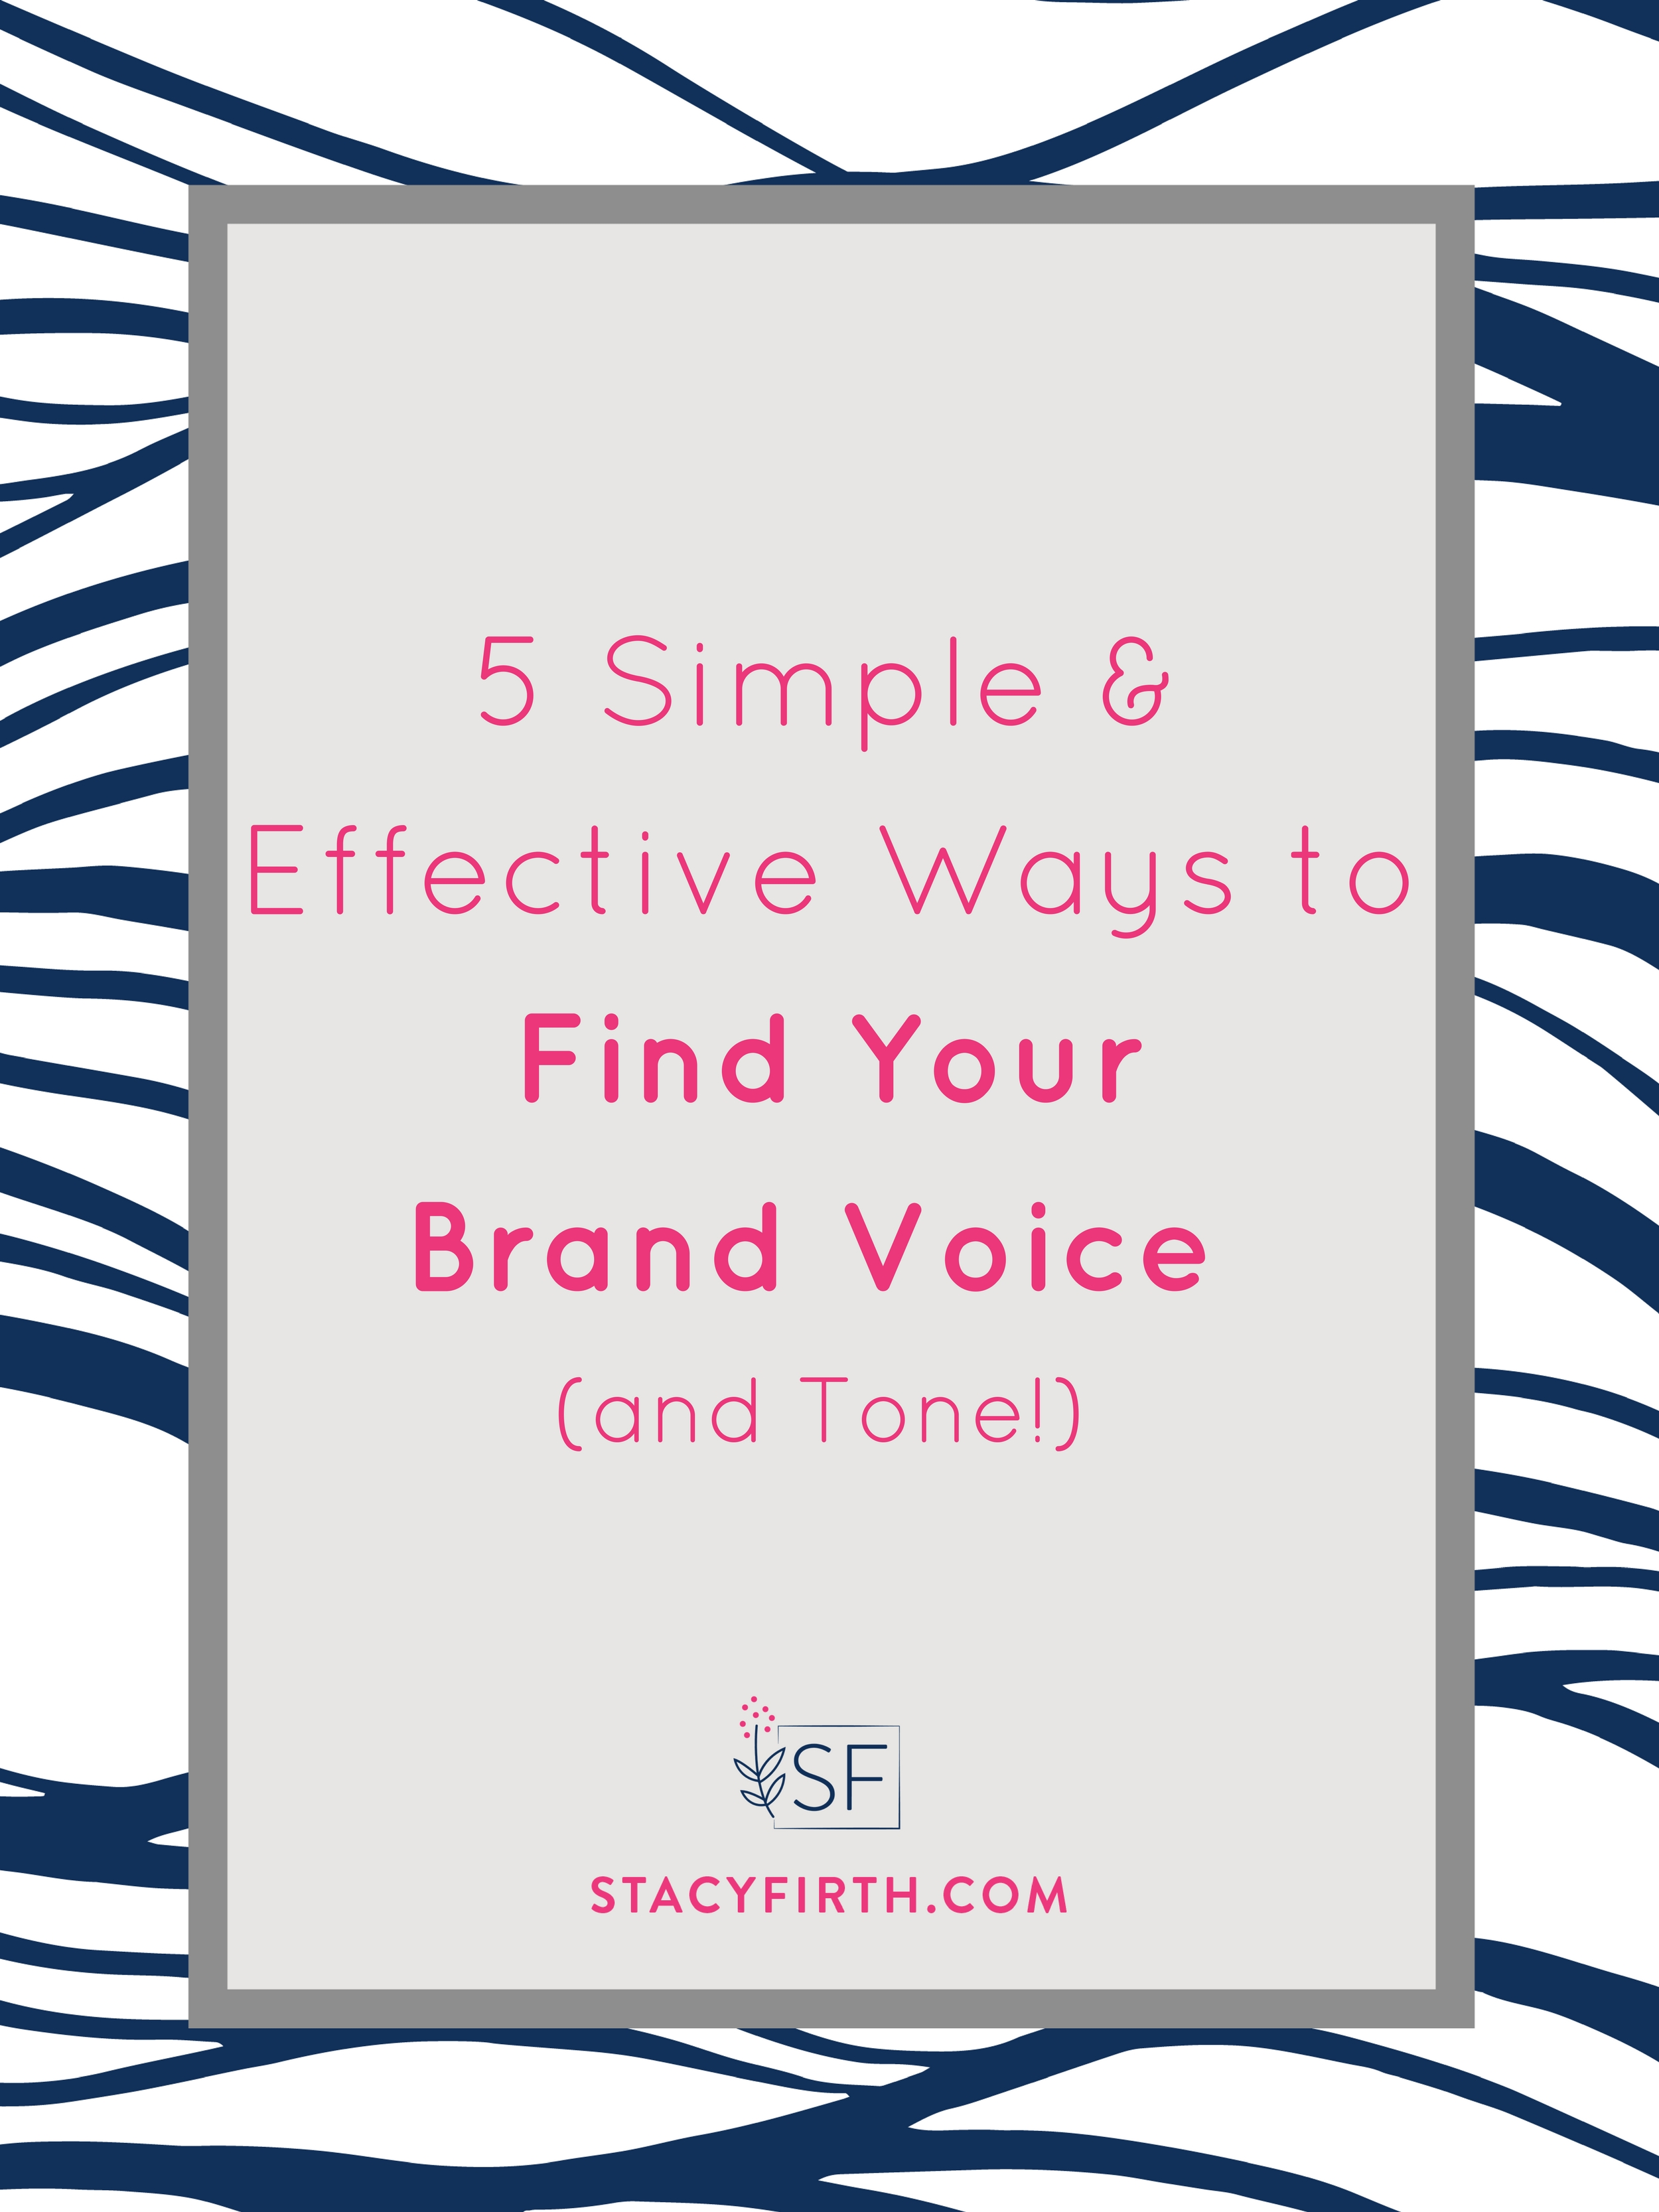 If you're trying to create #allthethings, but feel like your content is all over the place, take a step back and work on your brand voice and tone before you write another word.